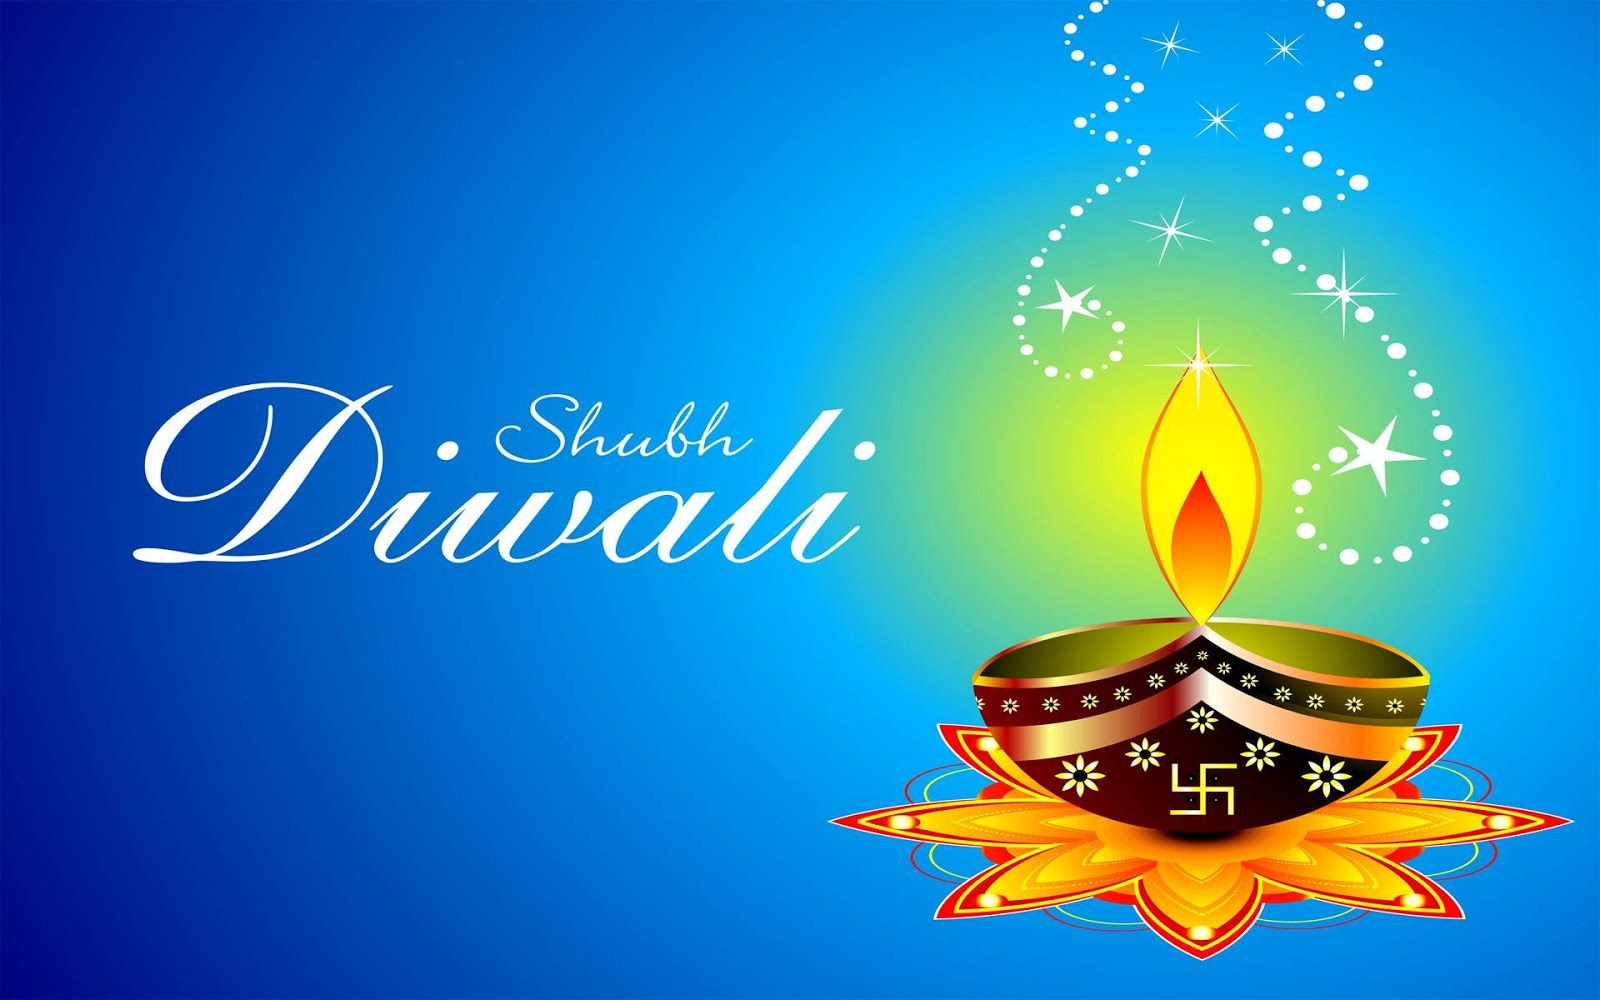 Free Greetings, Cards, Images, quot;s, Scraps and Ecards Diwali new year greetings pictures